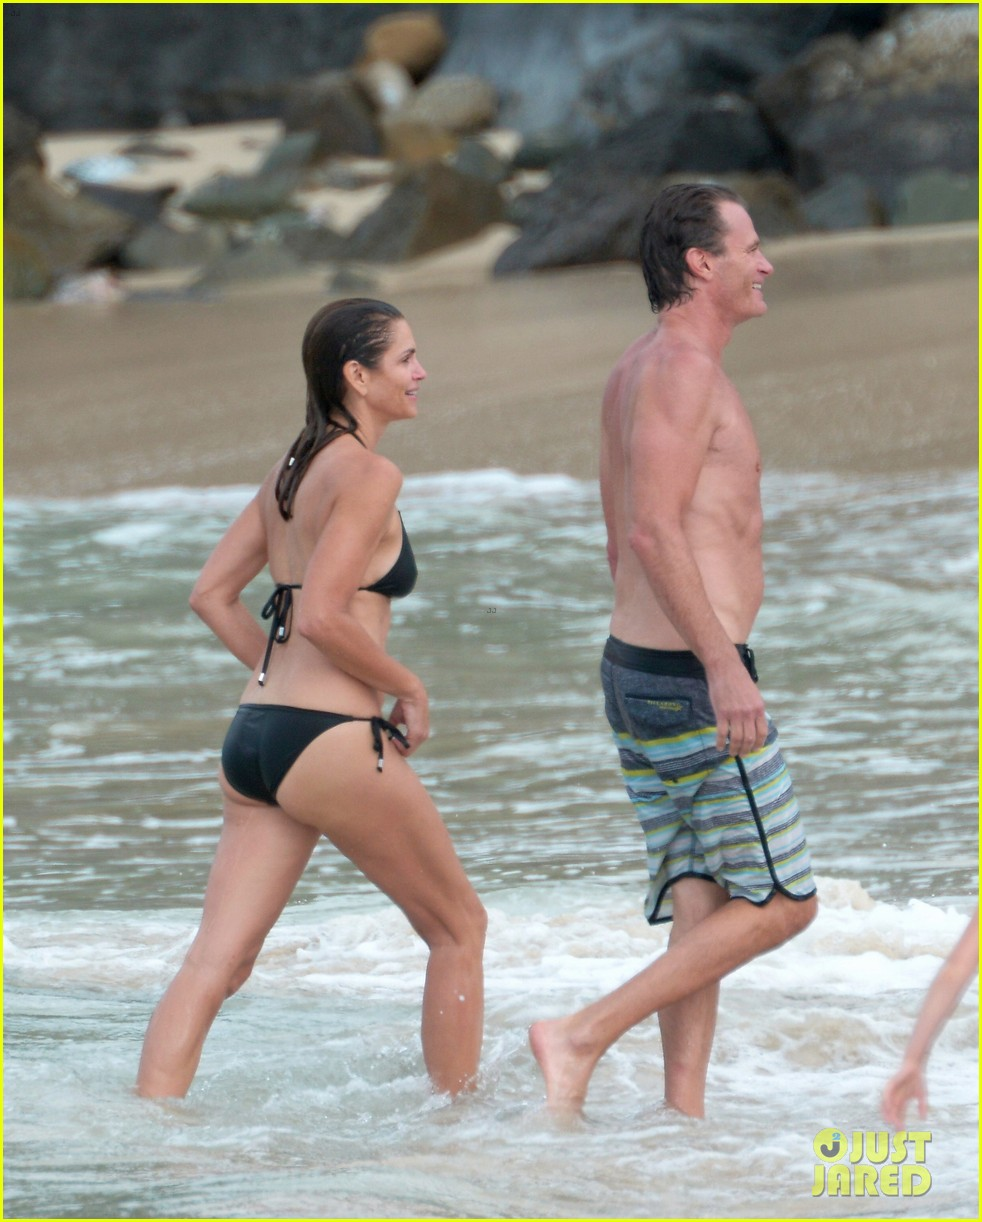 cindy-crawford-bares-bikini-body-in-st-barts-with-rande-gerber-03